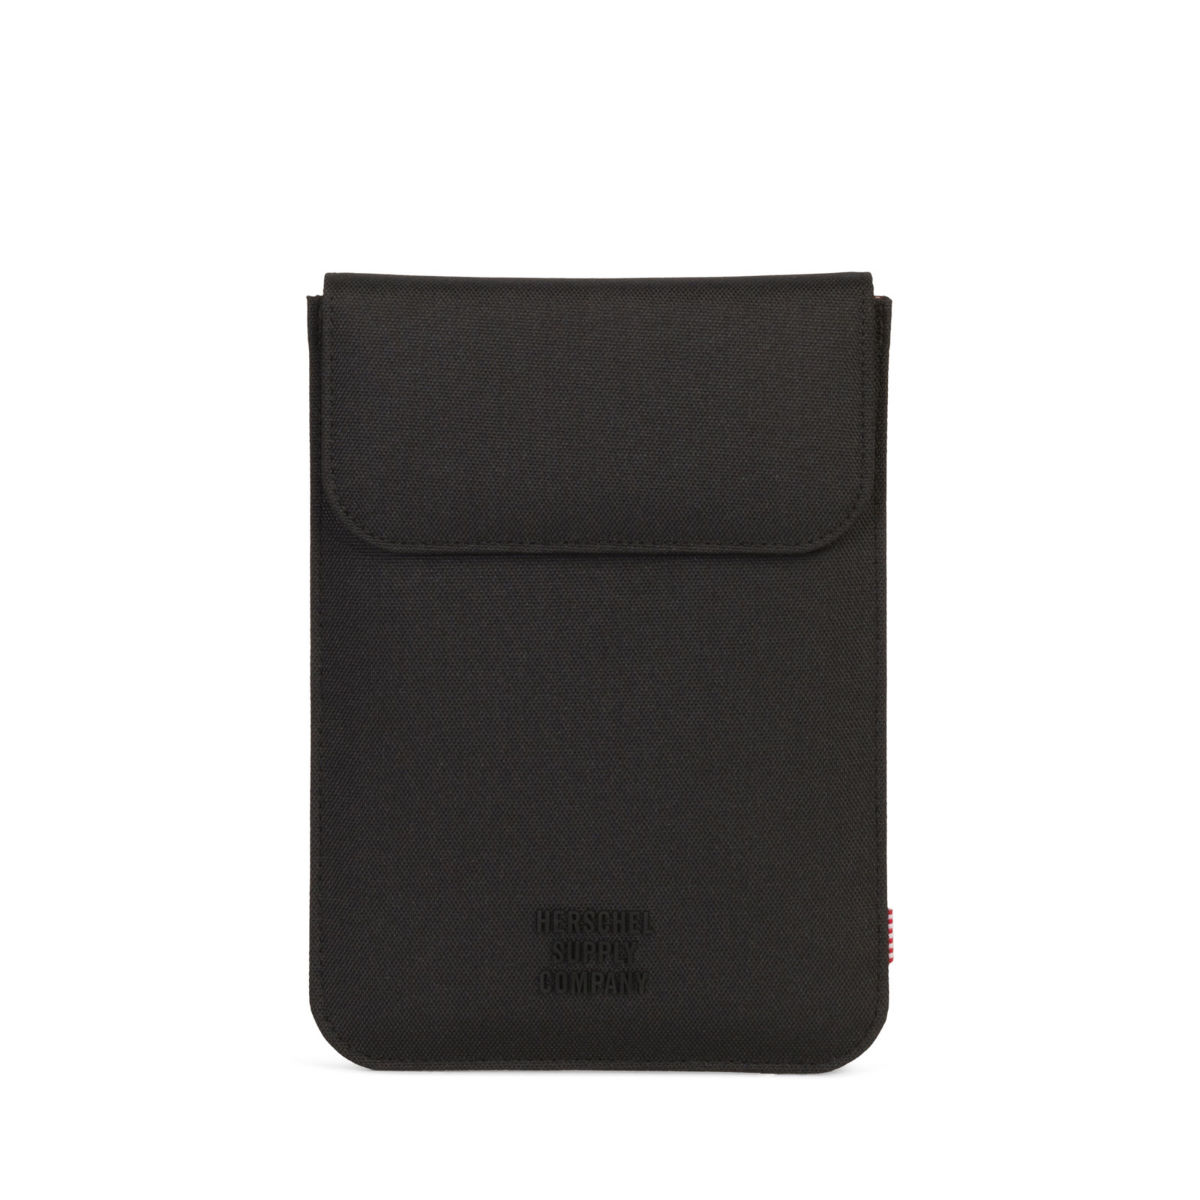 Herschel Spokane Sleeve for iPad Mini - Bolsas de viaje